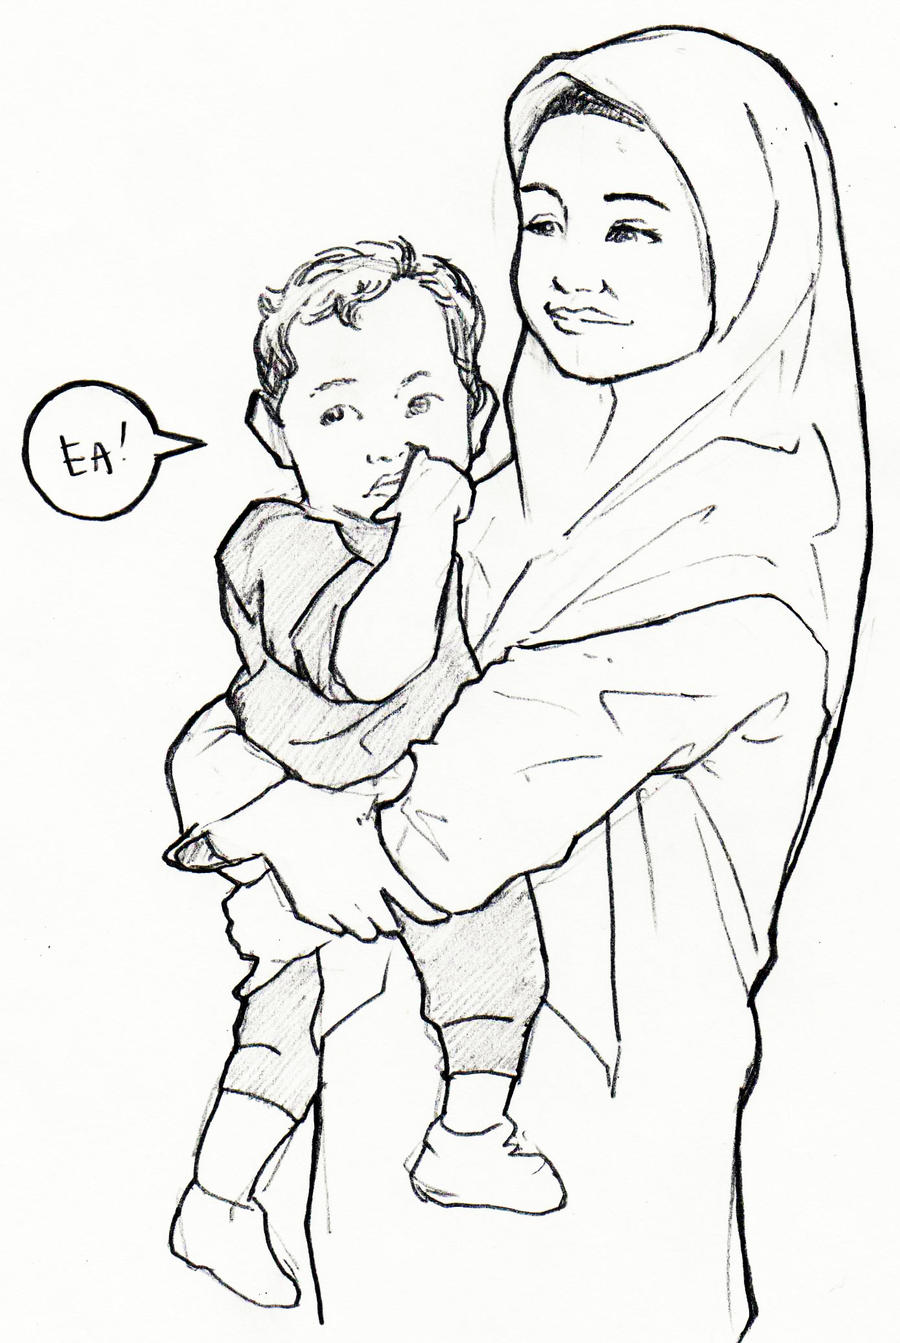 mother and child by agentea on deviantart